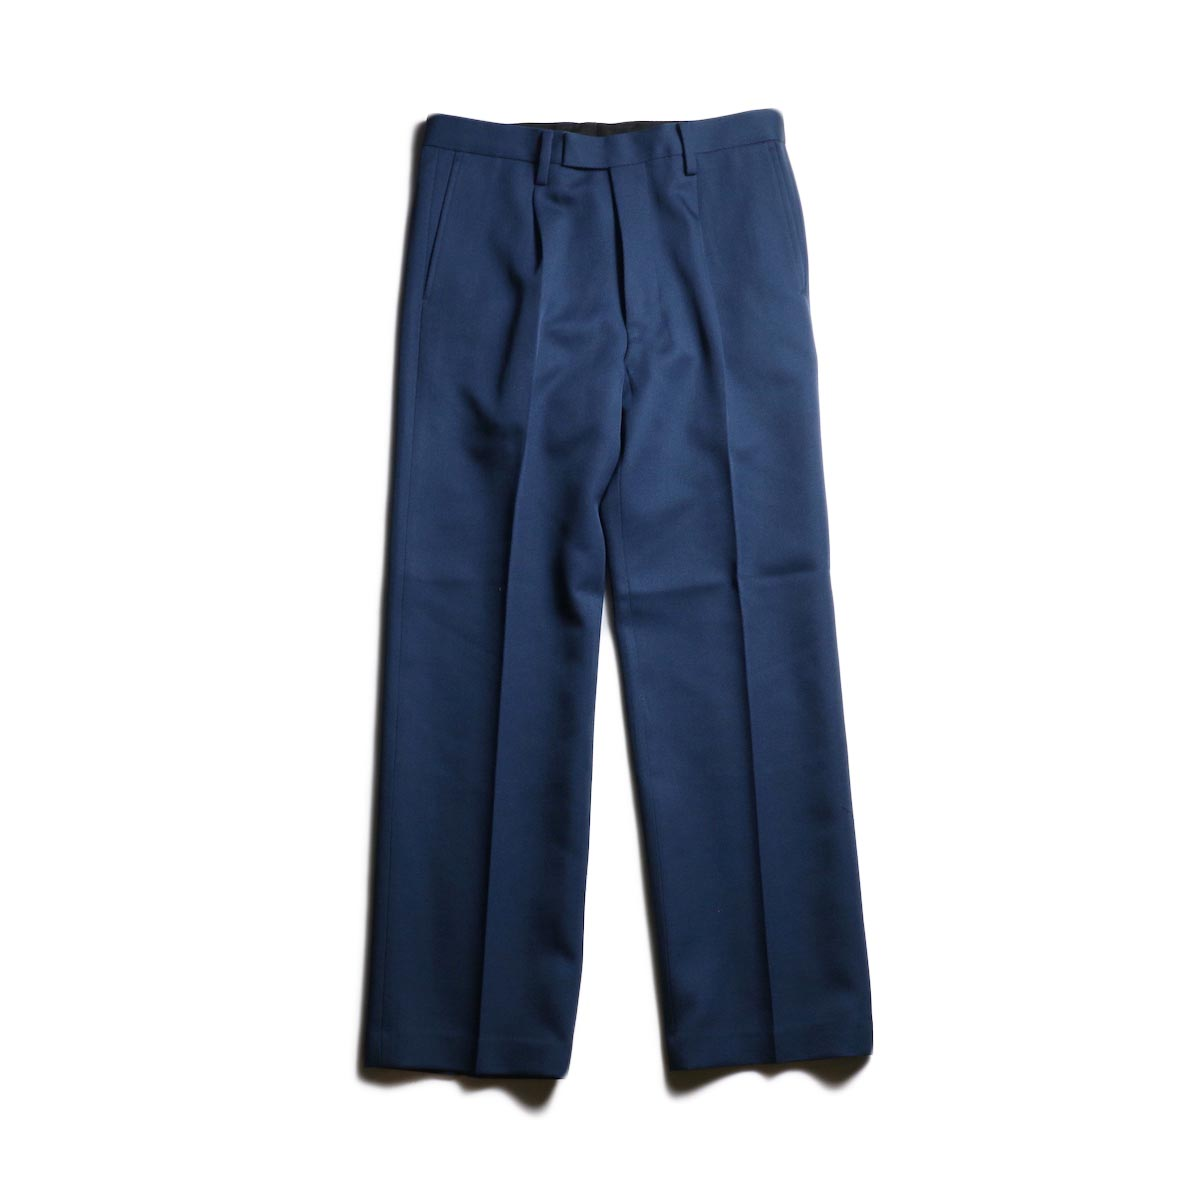 UNUSED / UW0799 Wool Slacks (Navy)